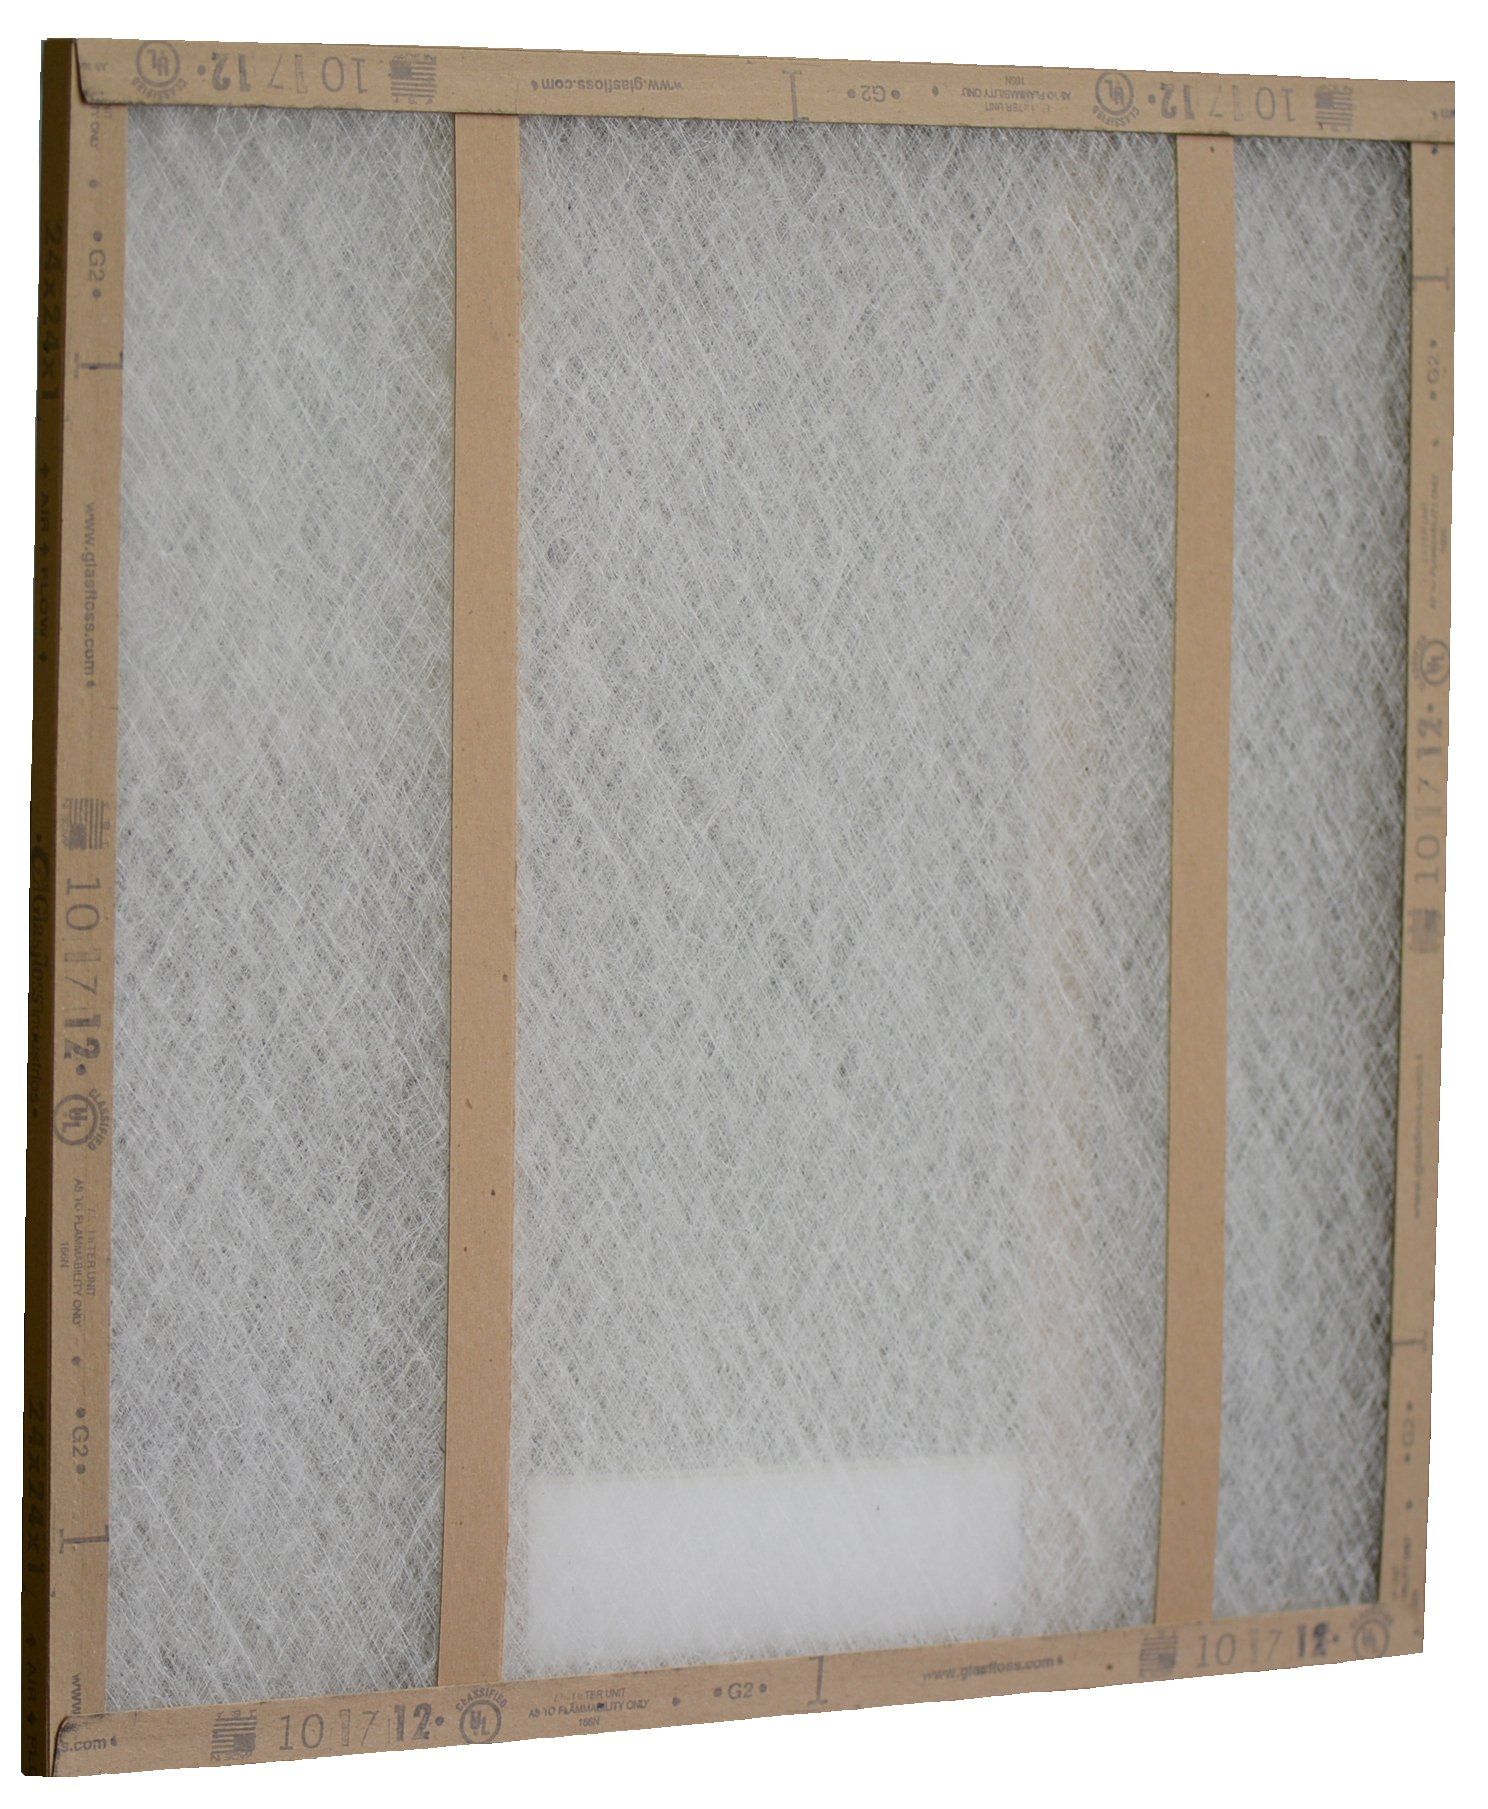 Glasfloss Industries GDS20201 GDS Series Double Strut Disposable Panel Air Filter, 12-Case